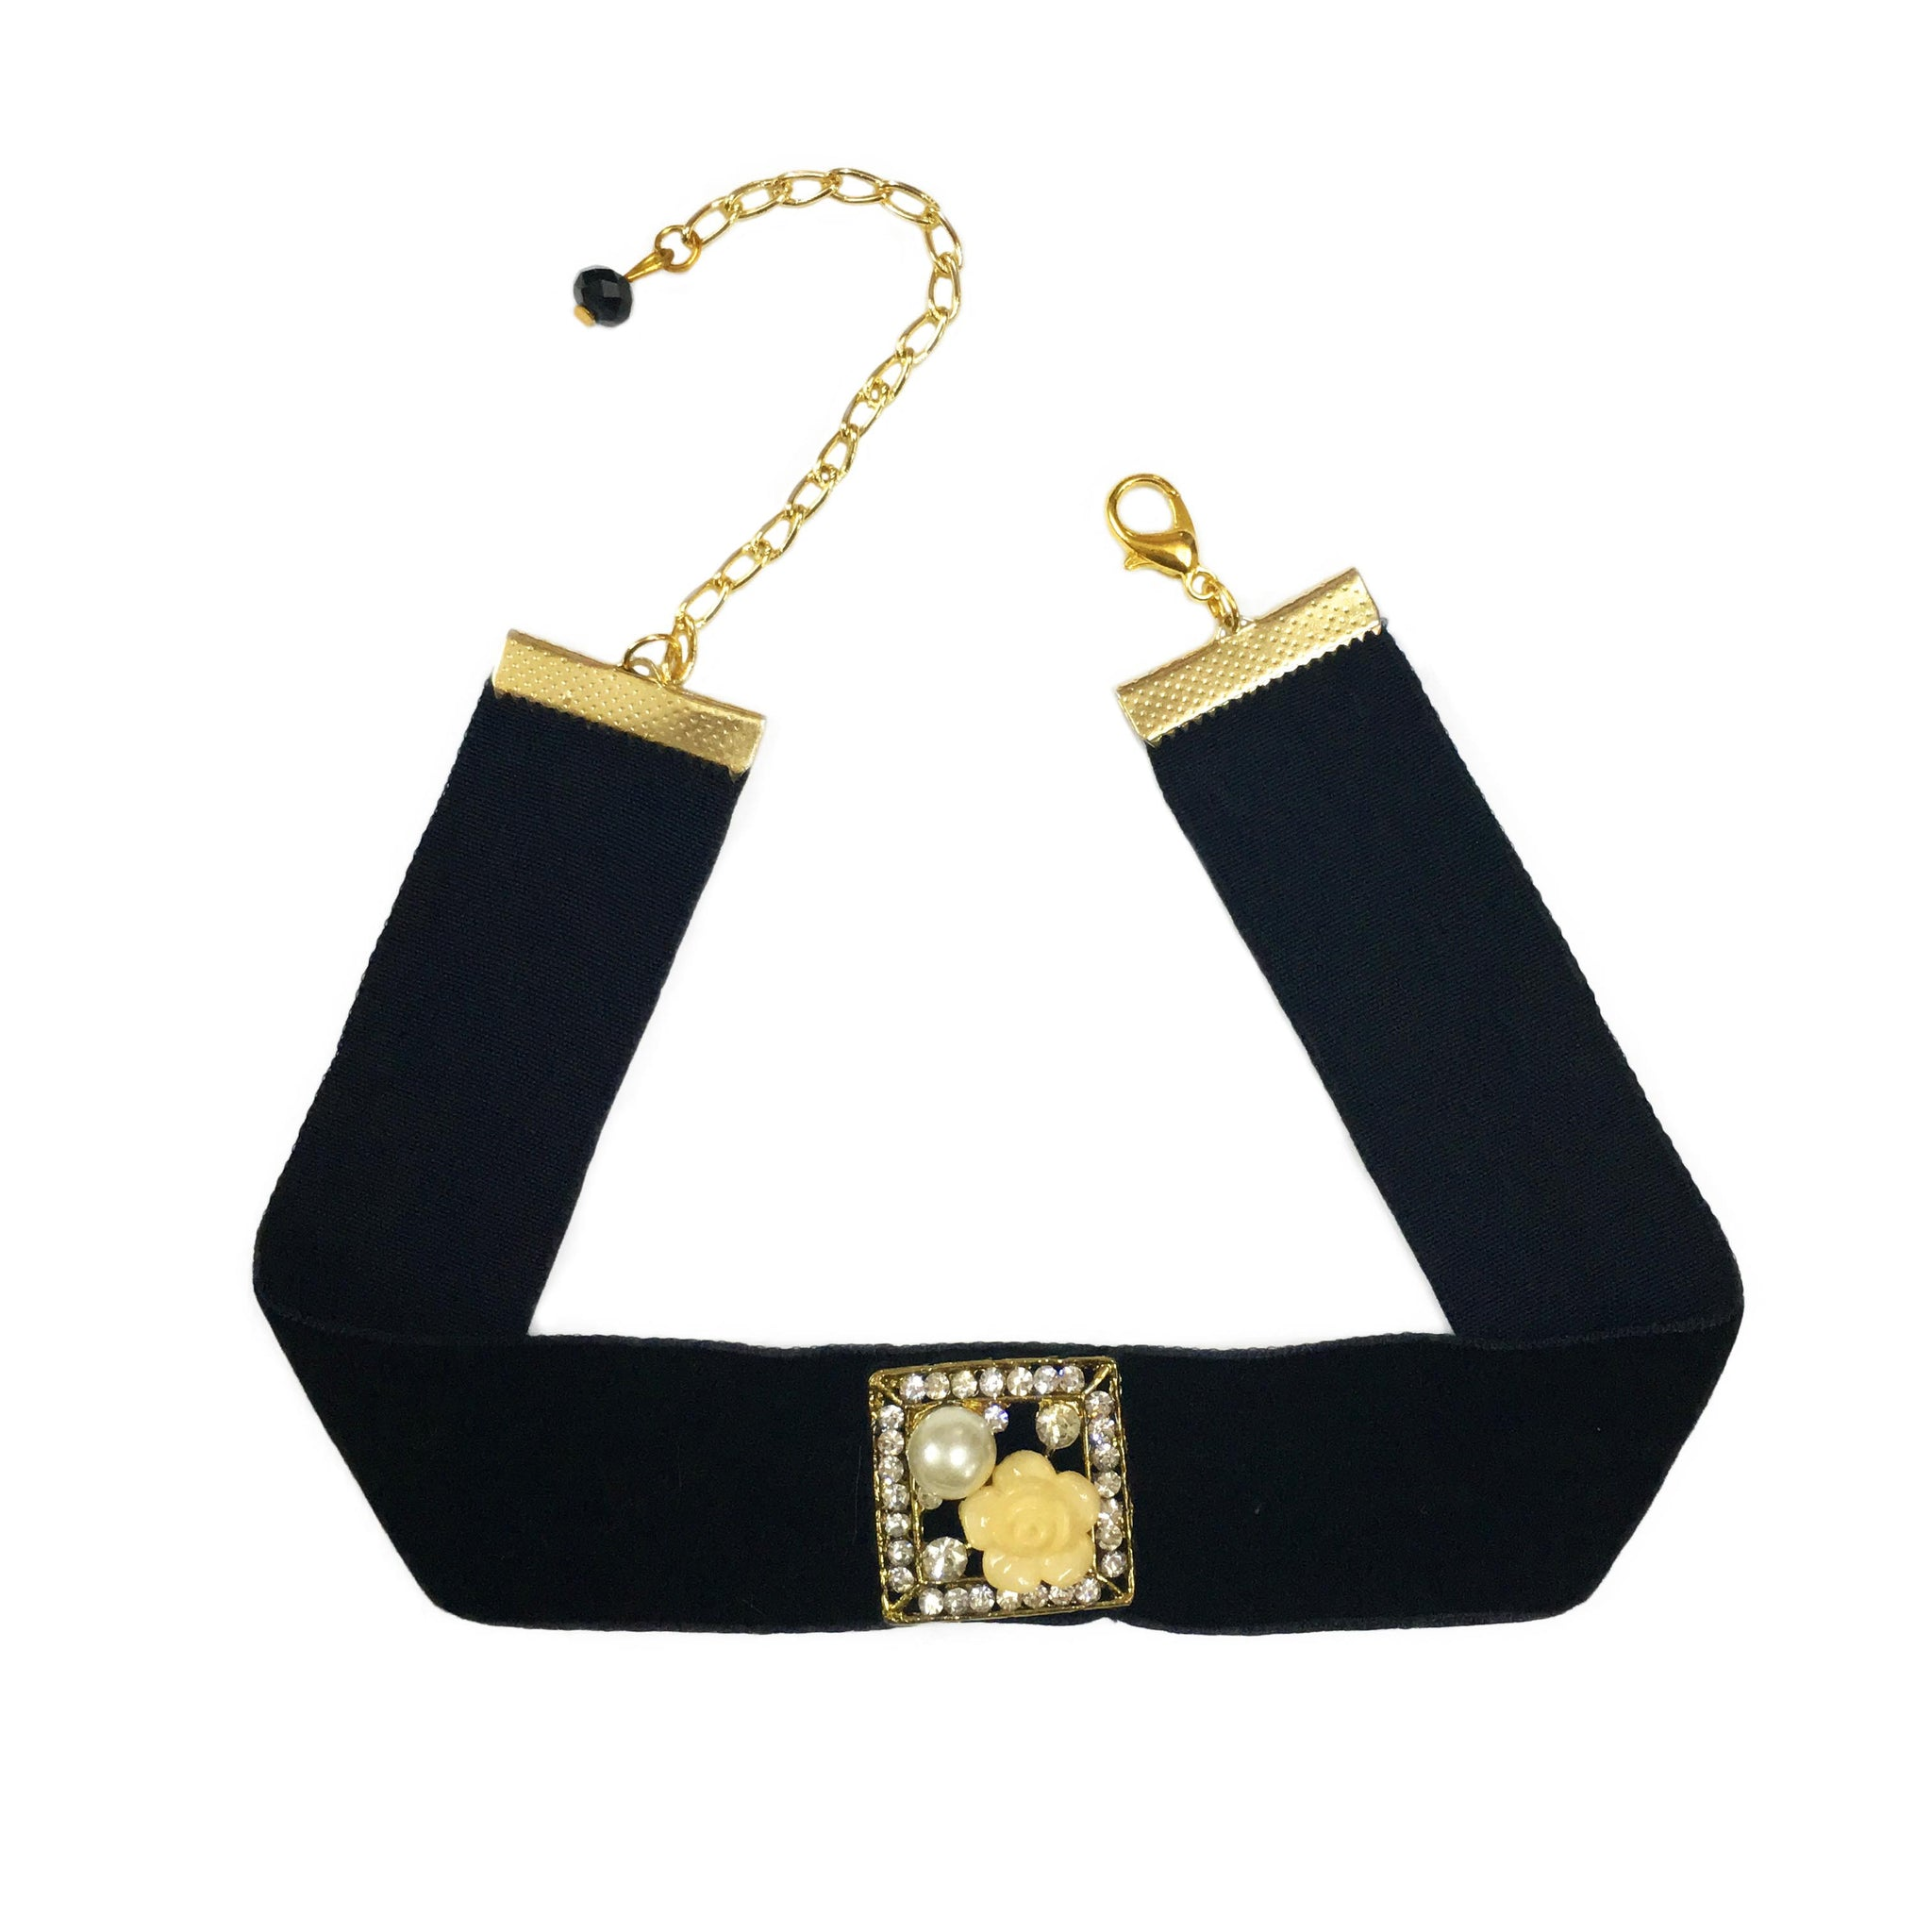 Black Velvet Pendant Choker Necklace inspired by Sonam Kapoor's Look